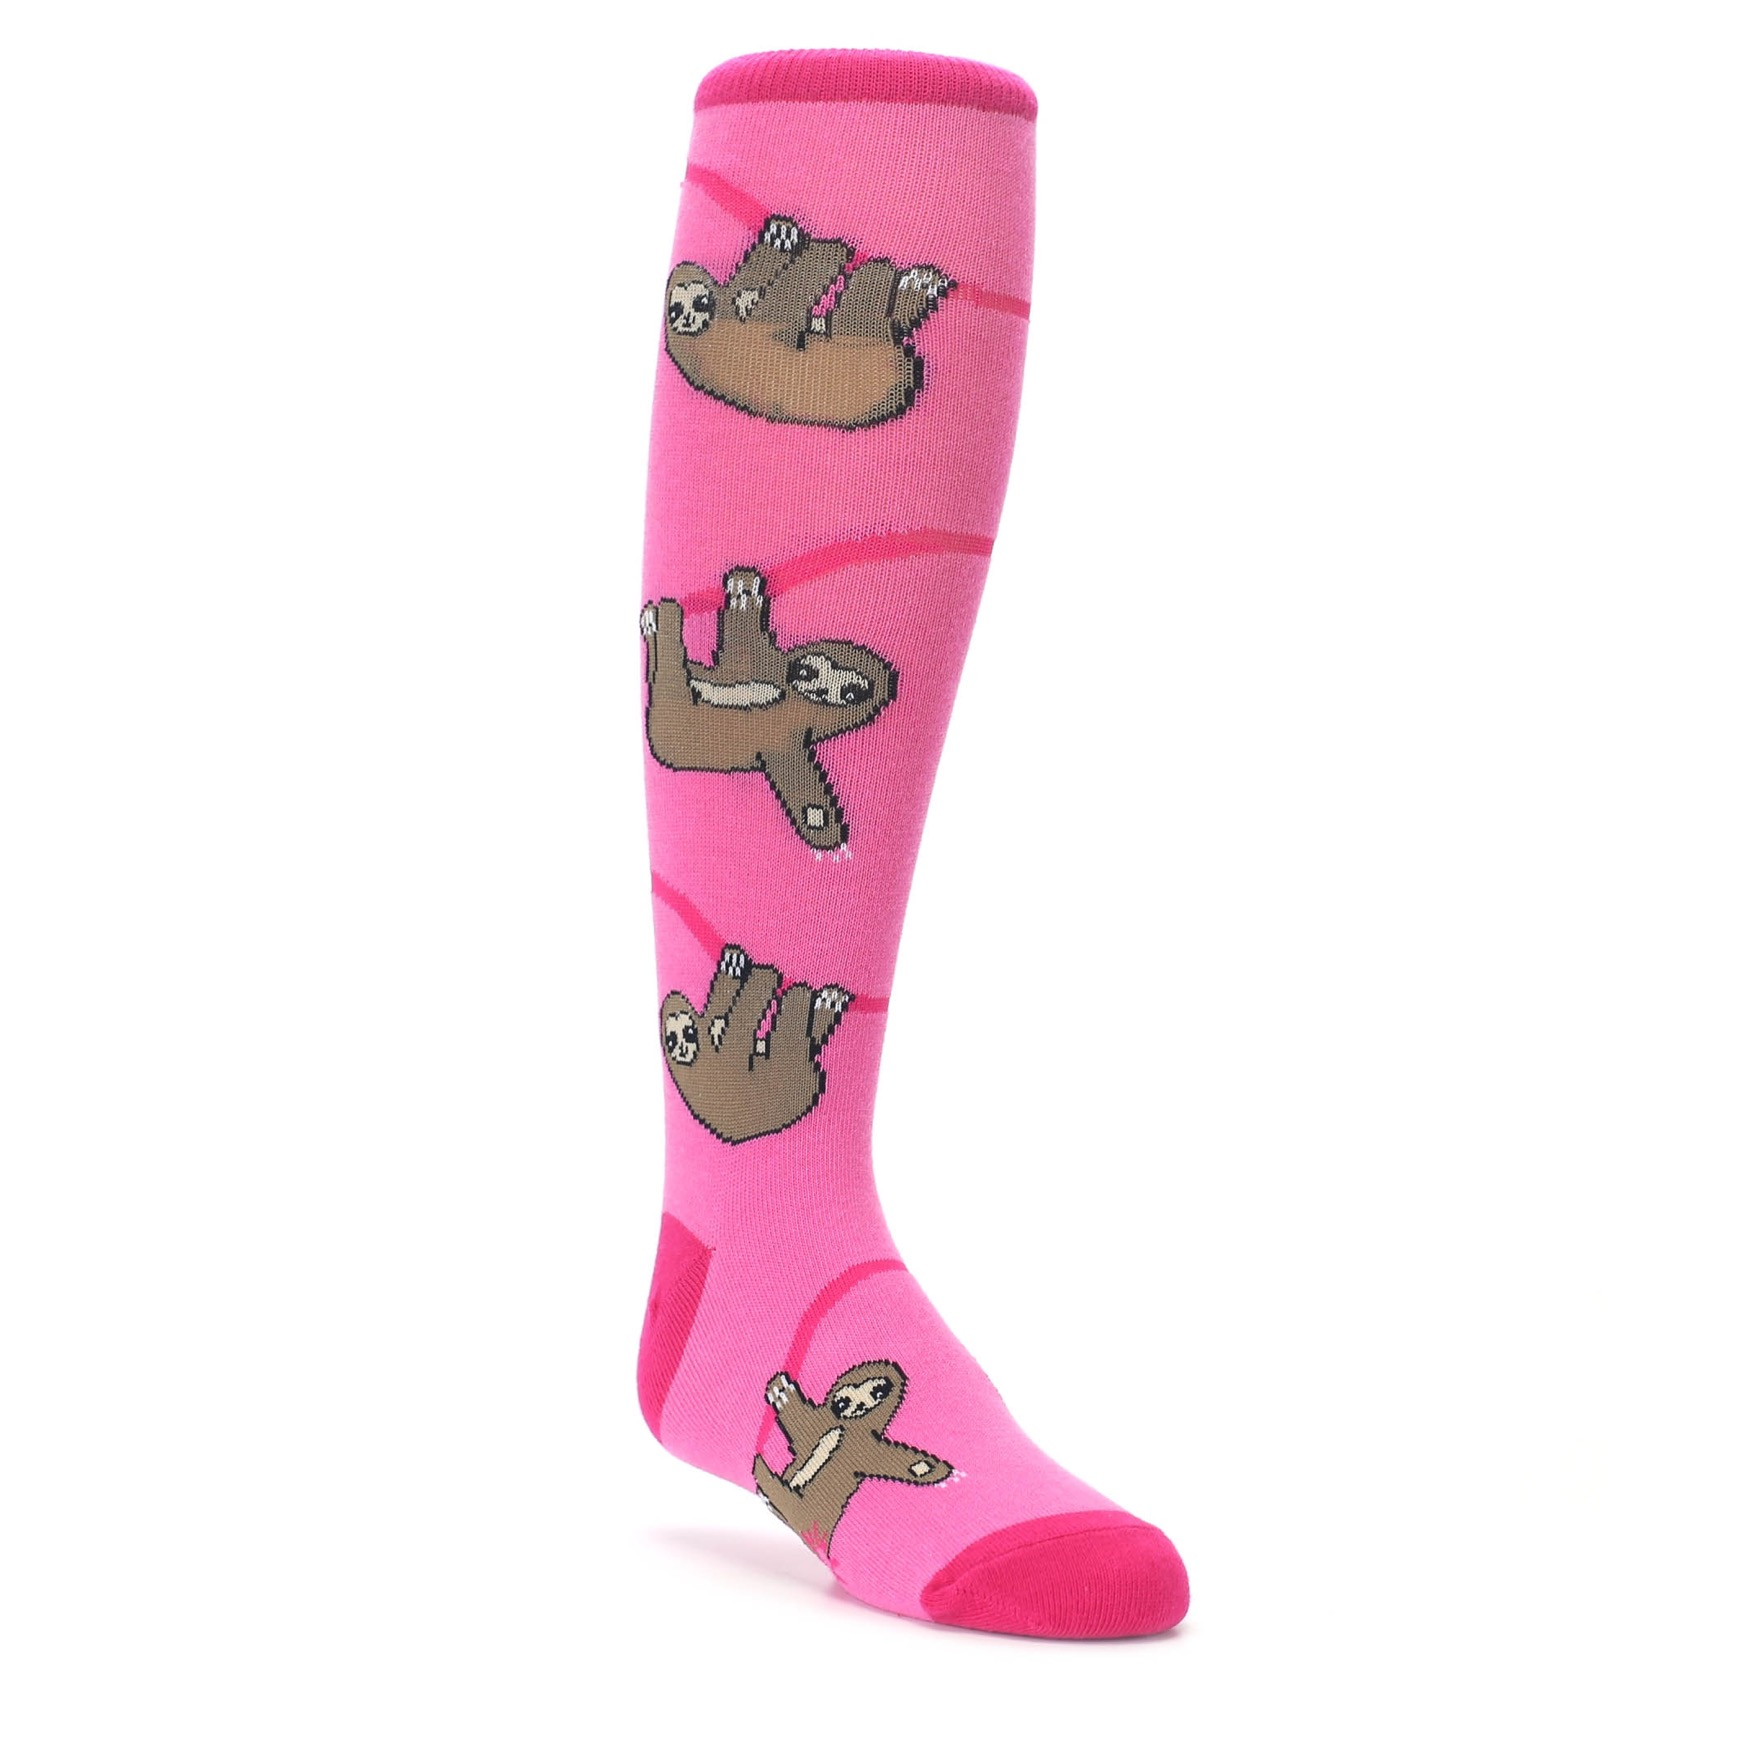 0a5bb8c52bffe pink brown sloths kids novelty dress socks sock it to me